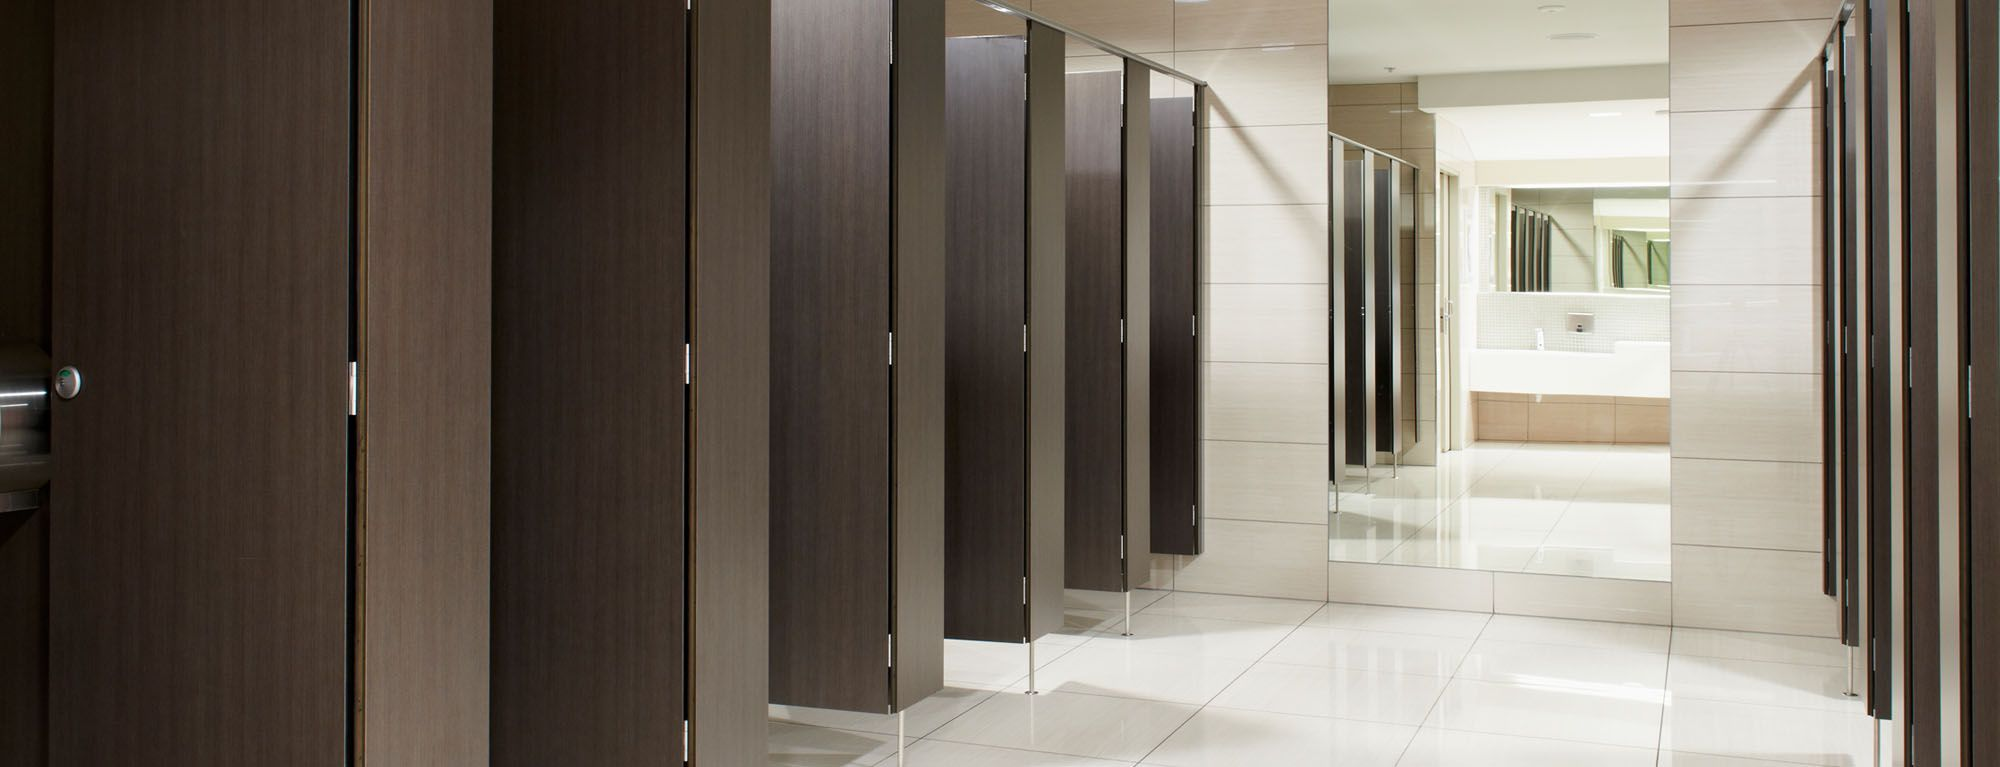 Commercial Bathroom Partitions Interior ablution solutions & toilet partitions  resco new zealand